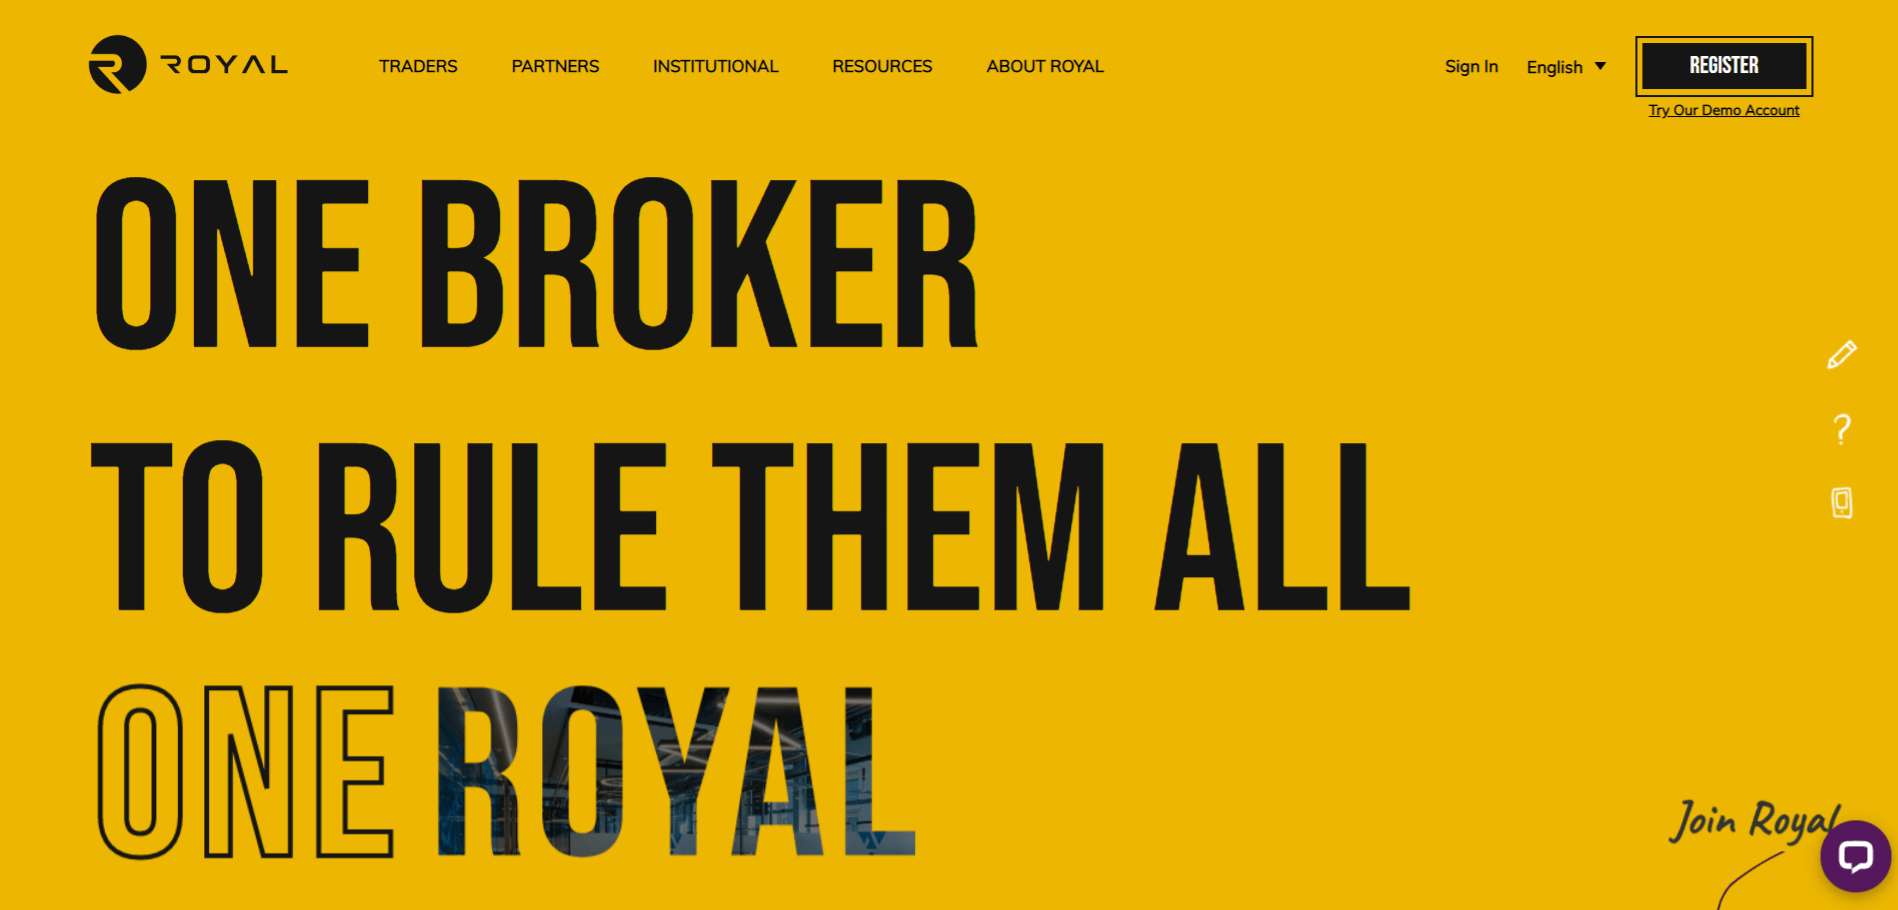 One Royal scam